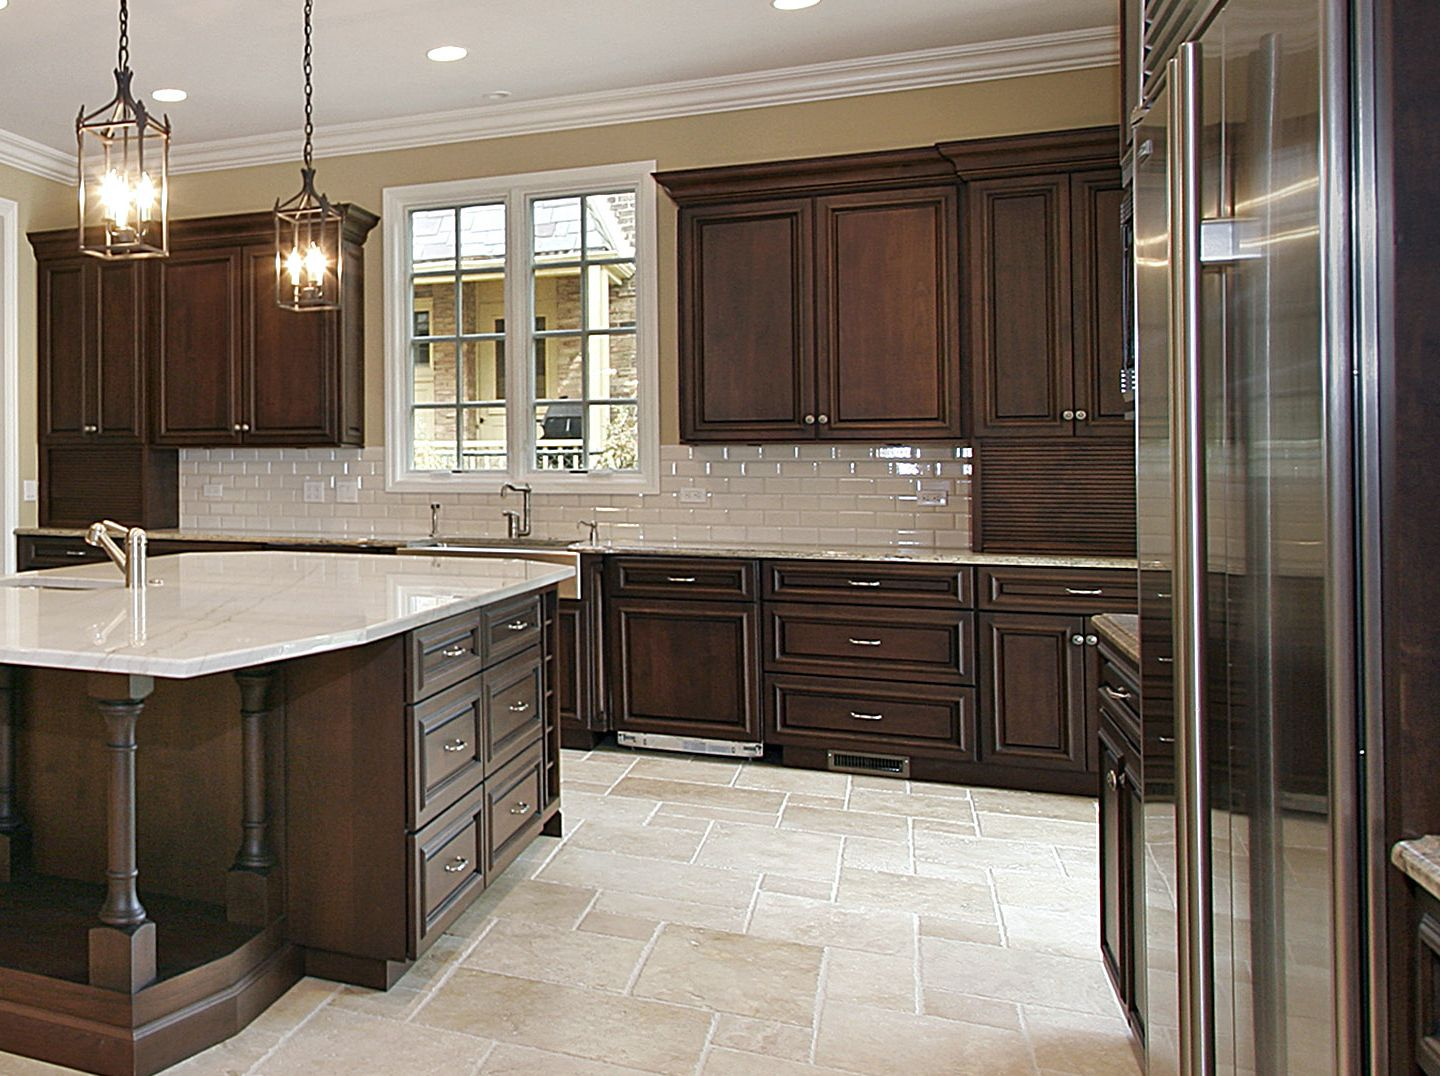 Classic Dark Cherry Kitchen With Large Island Www Prasadakitchens Com Dark Brown Kitchen Cabinets Brown Kitchen Cabinets Cherry Cabinets Kitchen